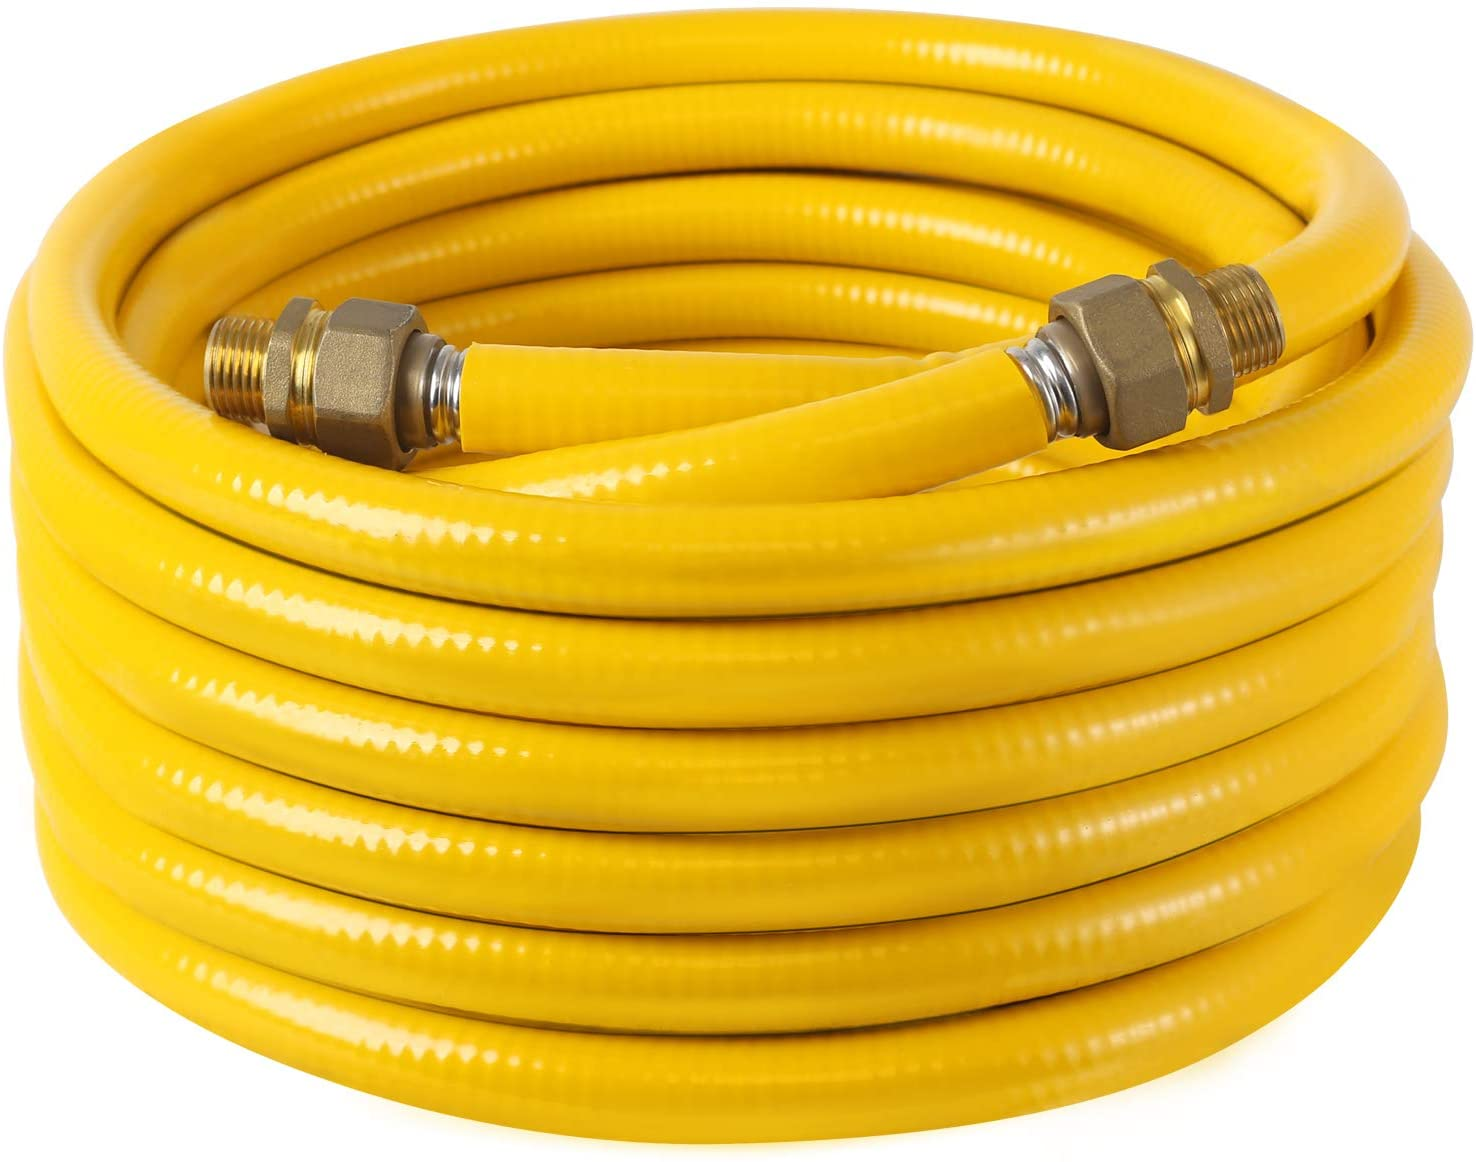 """Best Brose 1/2"""" Tubing Pipe KIT 150ft,Corrugated Stainless Steel Tubing with 2 Male Fittings : Industrial & Scientific"""